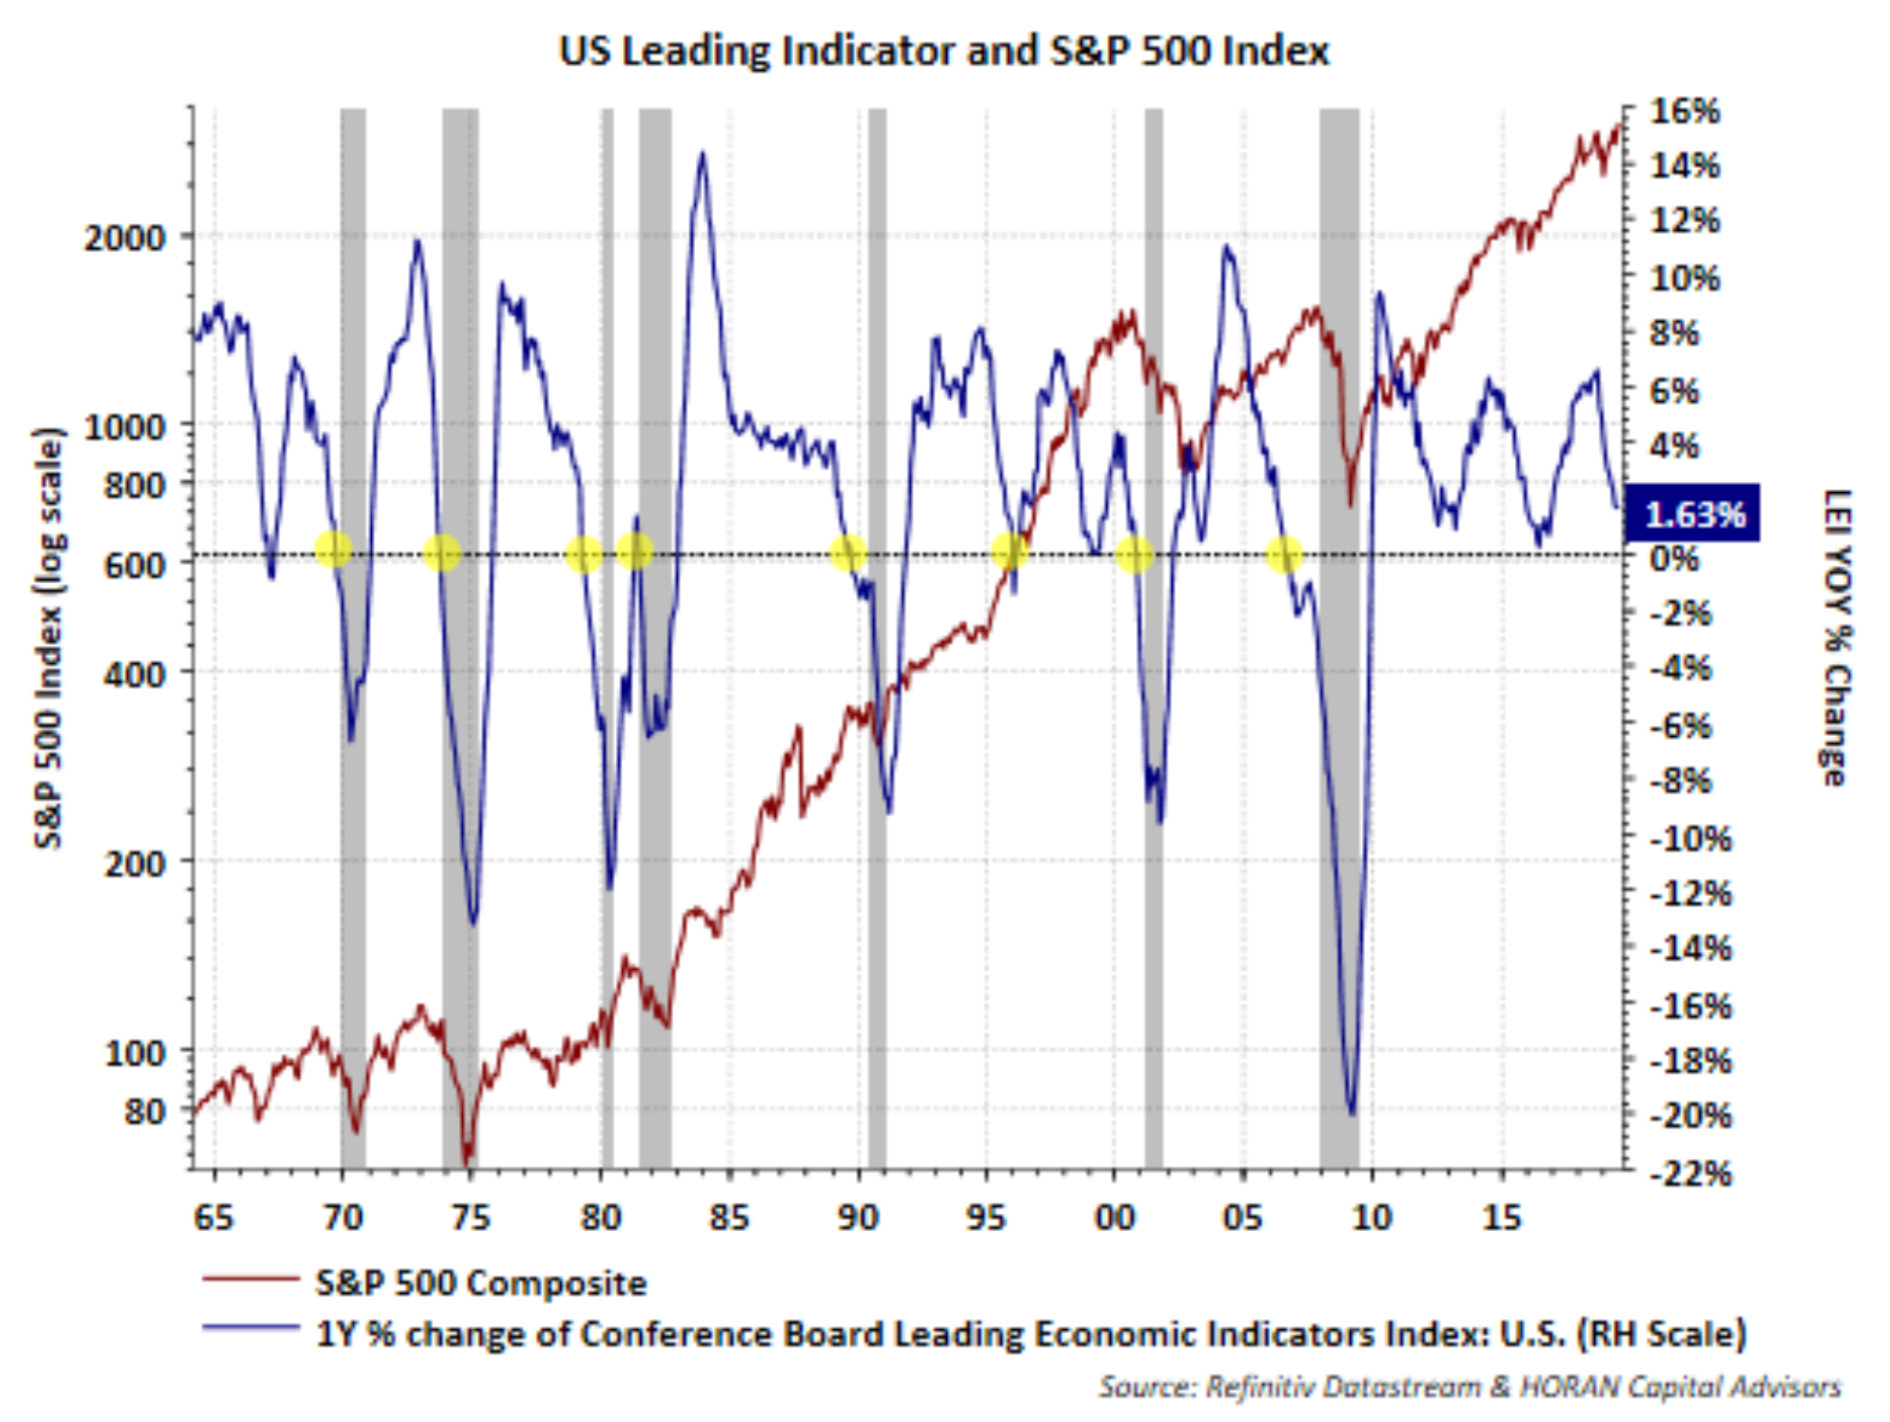 * Vertical grey bars indicate recessions